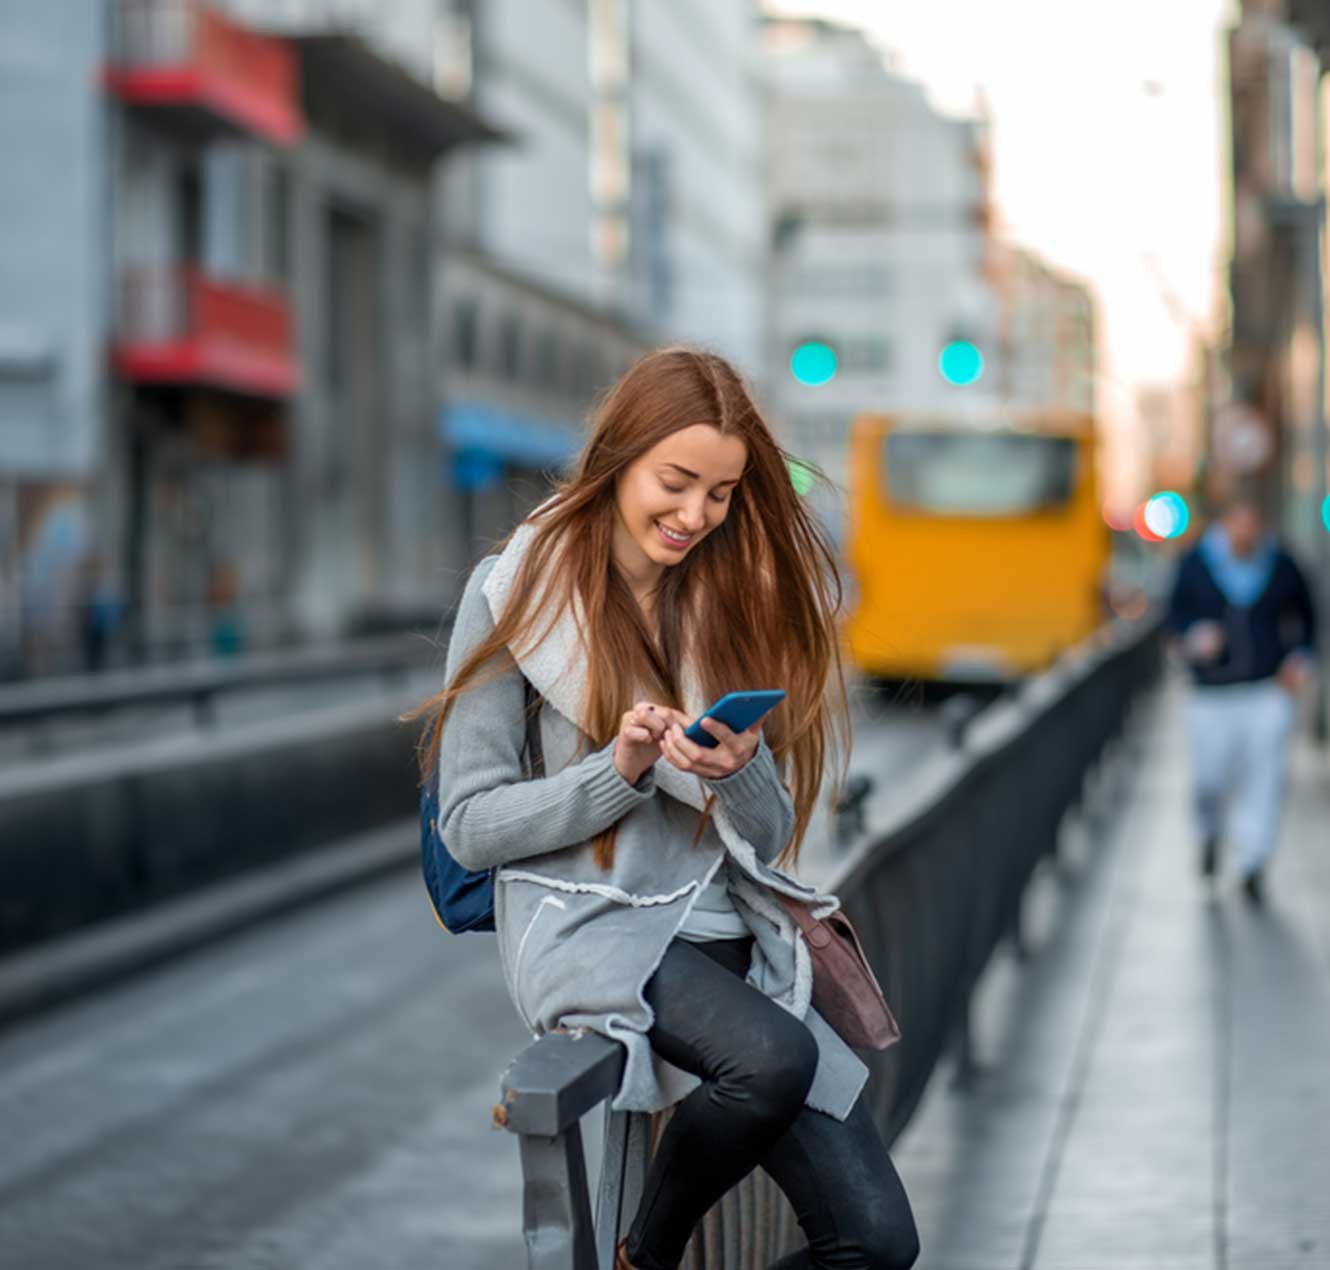 Young Lady Perched on a Railing, Smiling and Looking at Her Phone